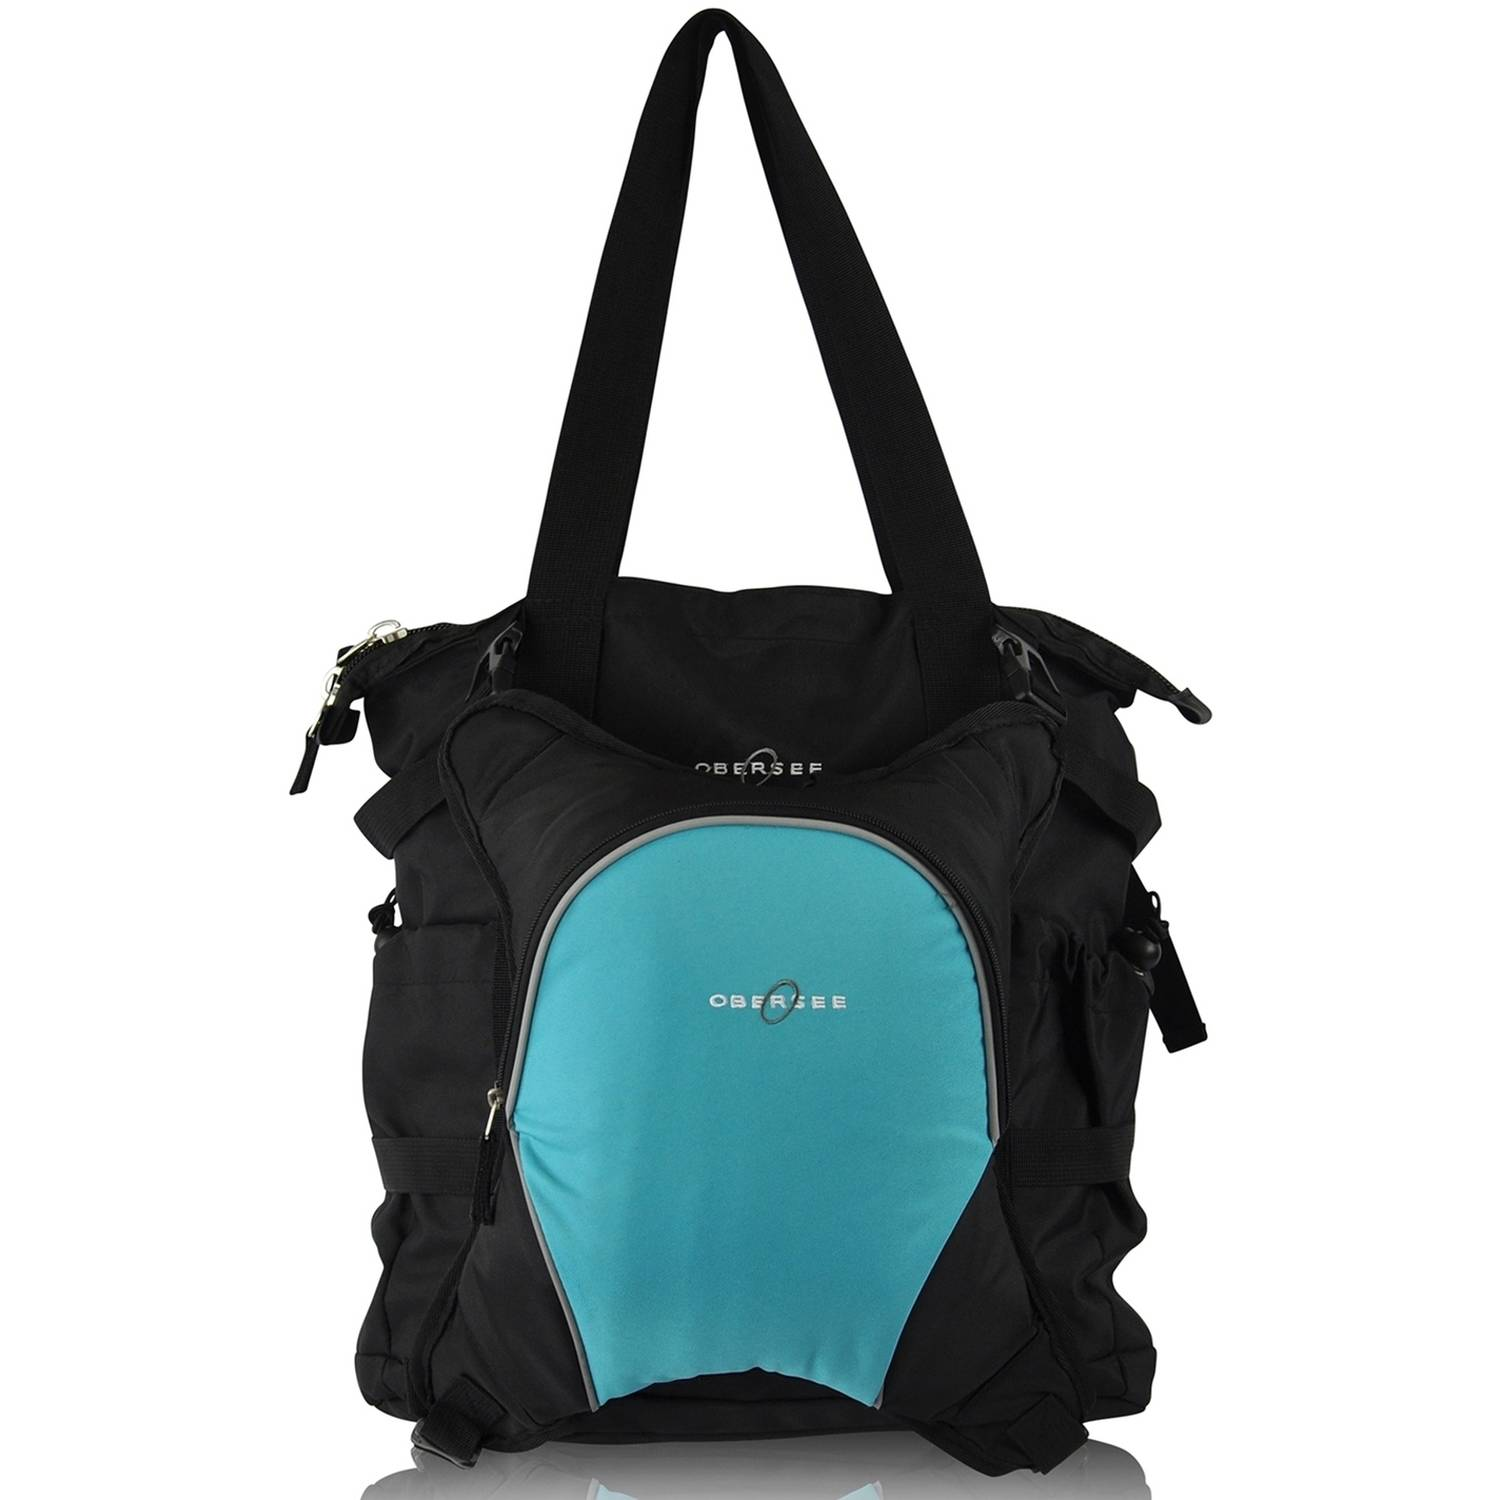 Obersee Innsbruck Diaper Bag Tote with Cooler, Black/Turquoise